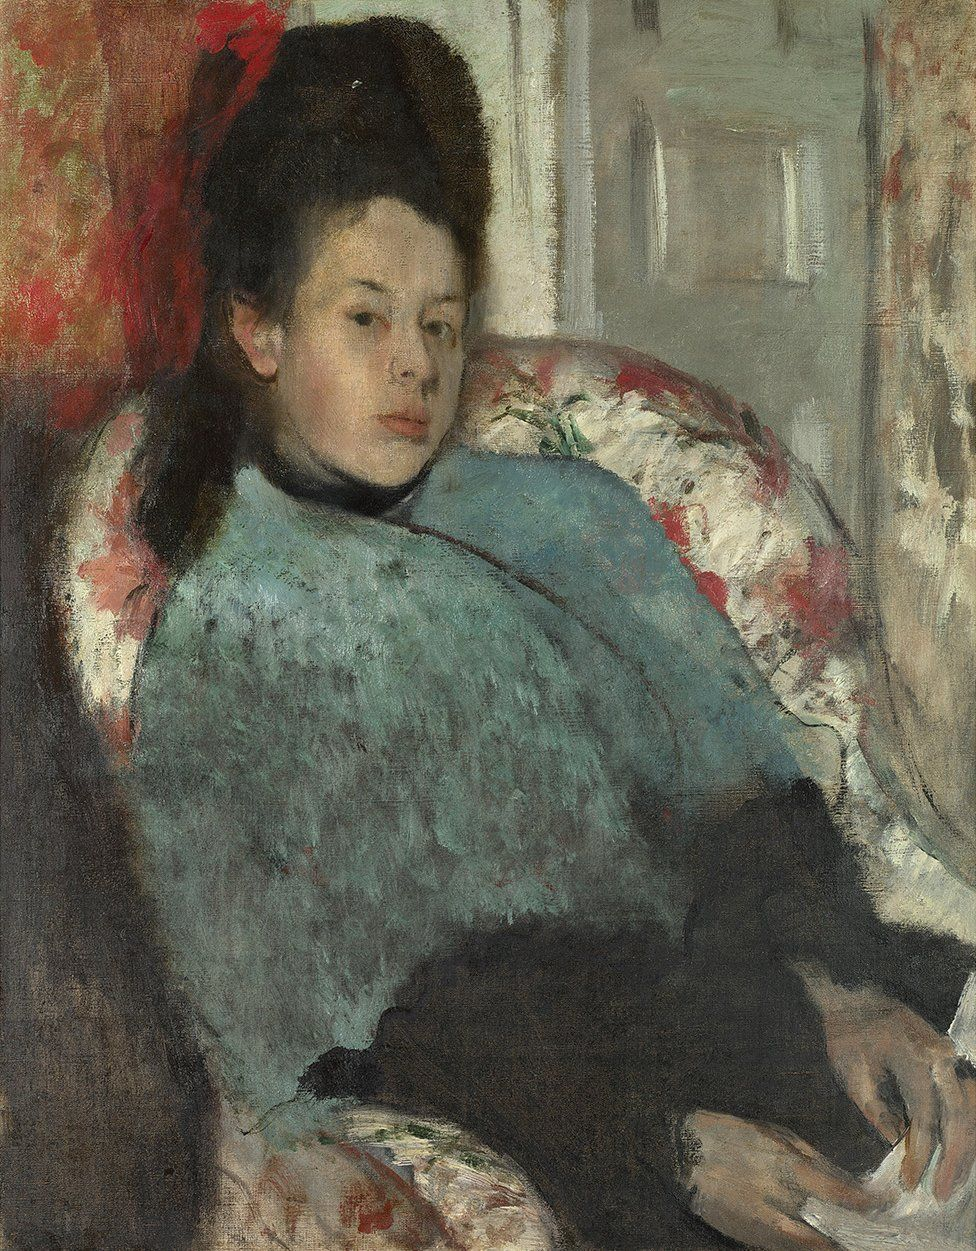 Portrait of Elena Carafa, c. 1875 by Edgar Degas, in the collection of the National Gallery, London